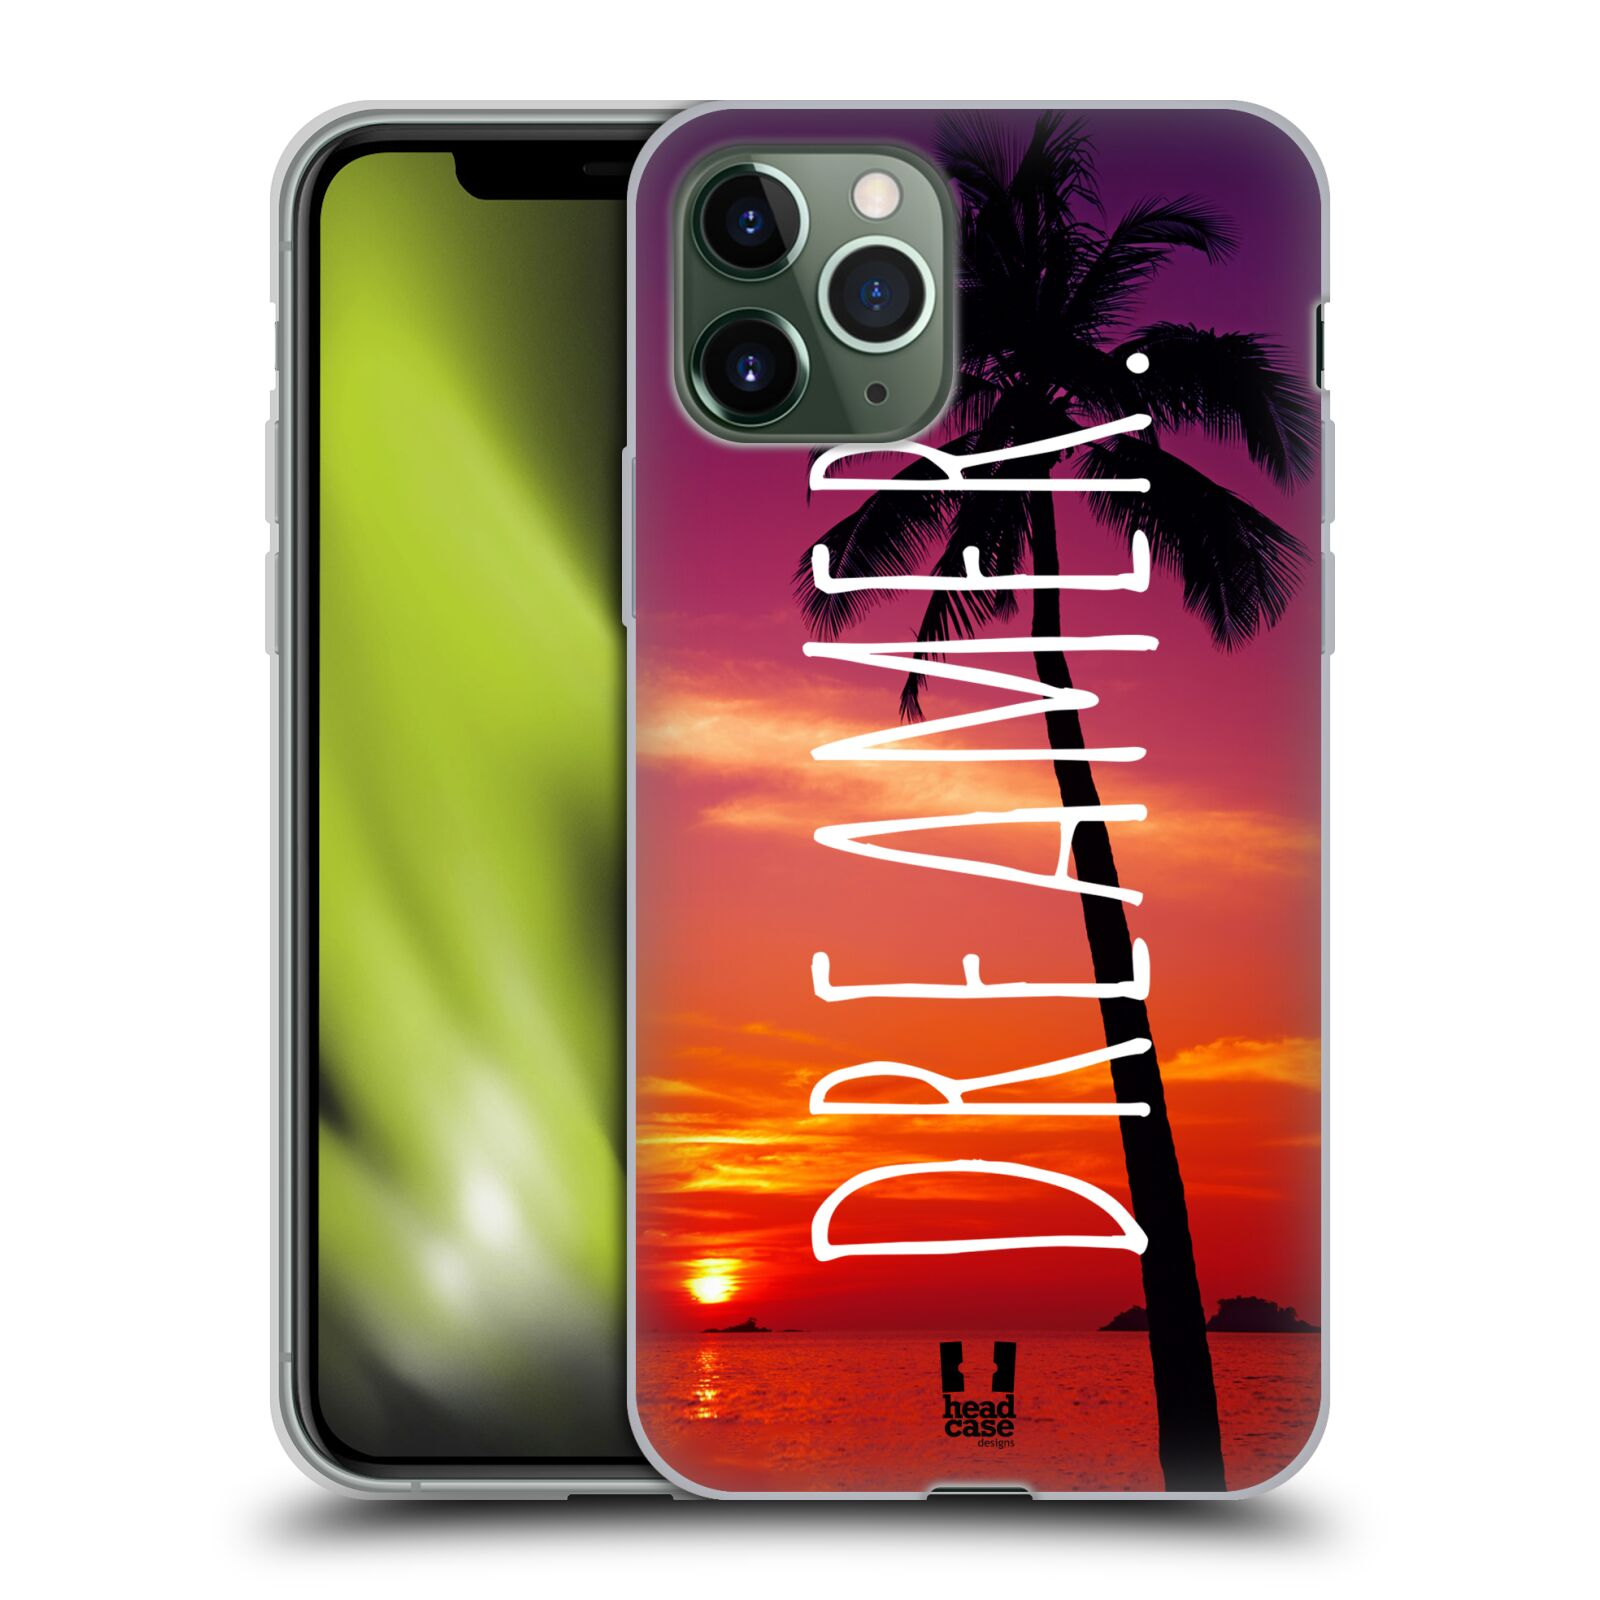 bazar krytu na iphone x | Silikonové pouzdro na mobil Apple iPhone 11 Pro - Head Case - MIX DREAMER